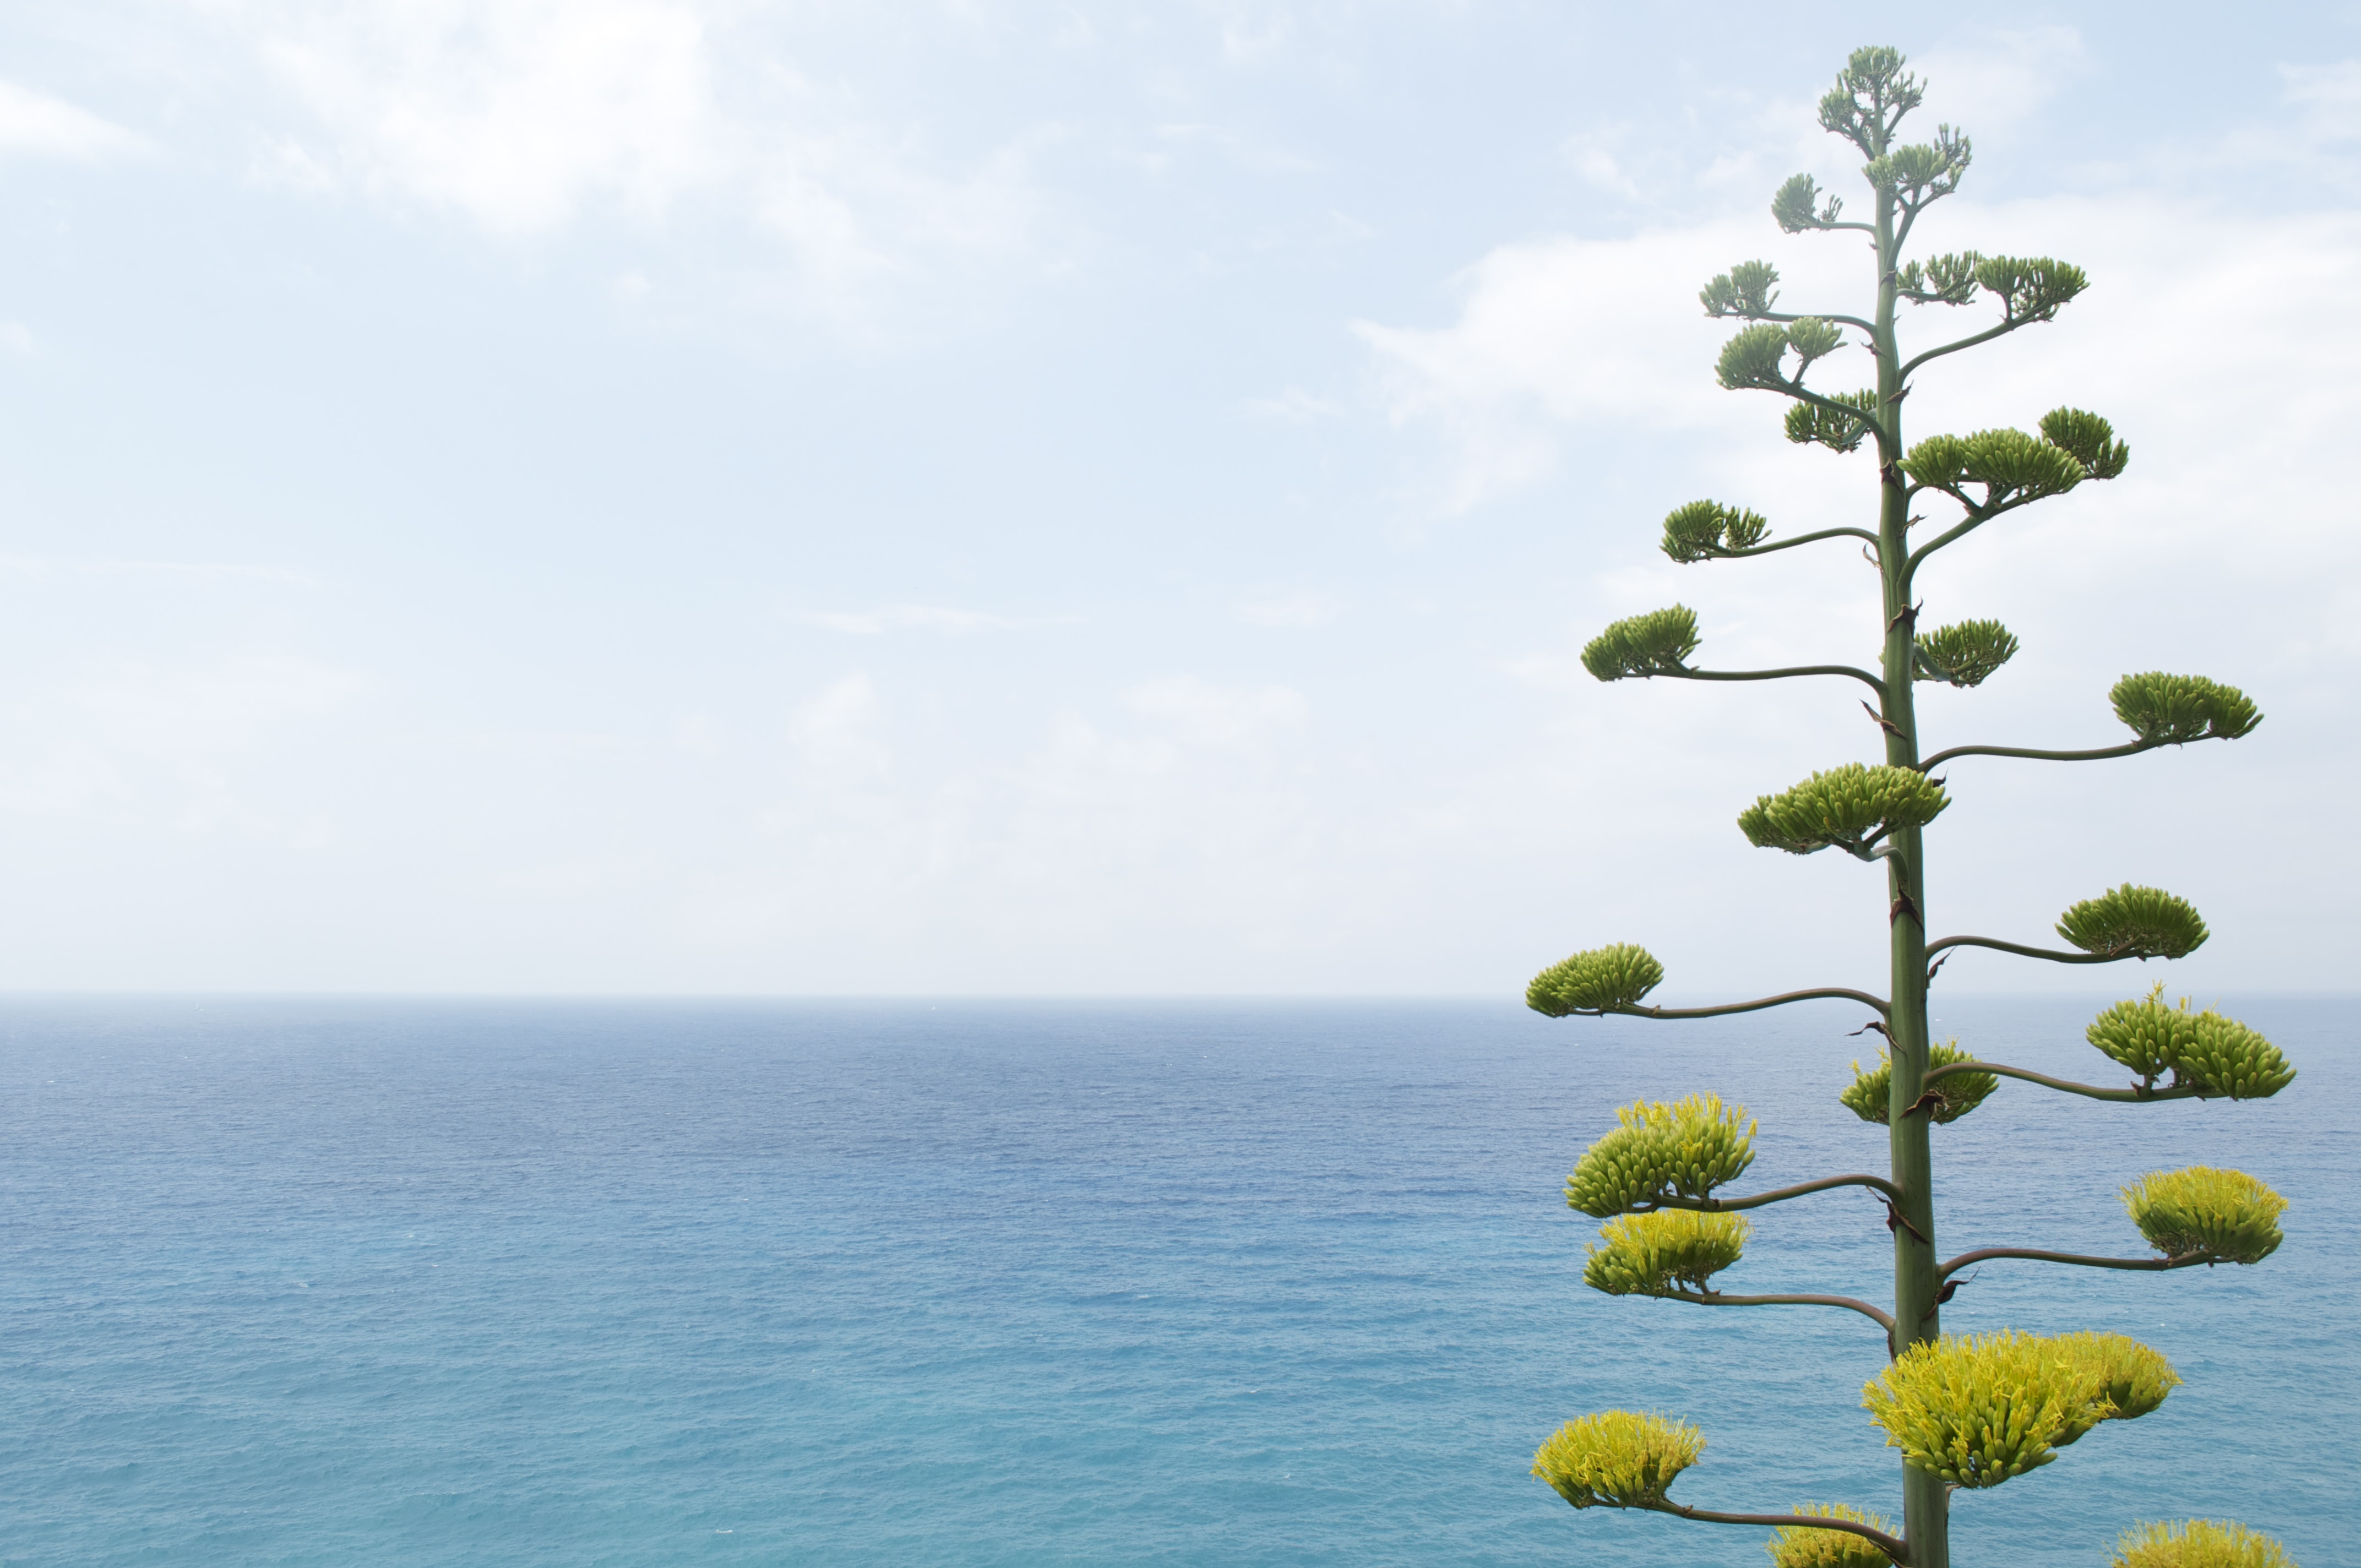 The top of a flowering tree towering over the turquoise sea